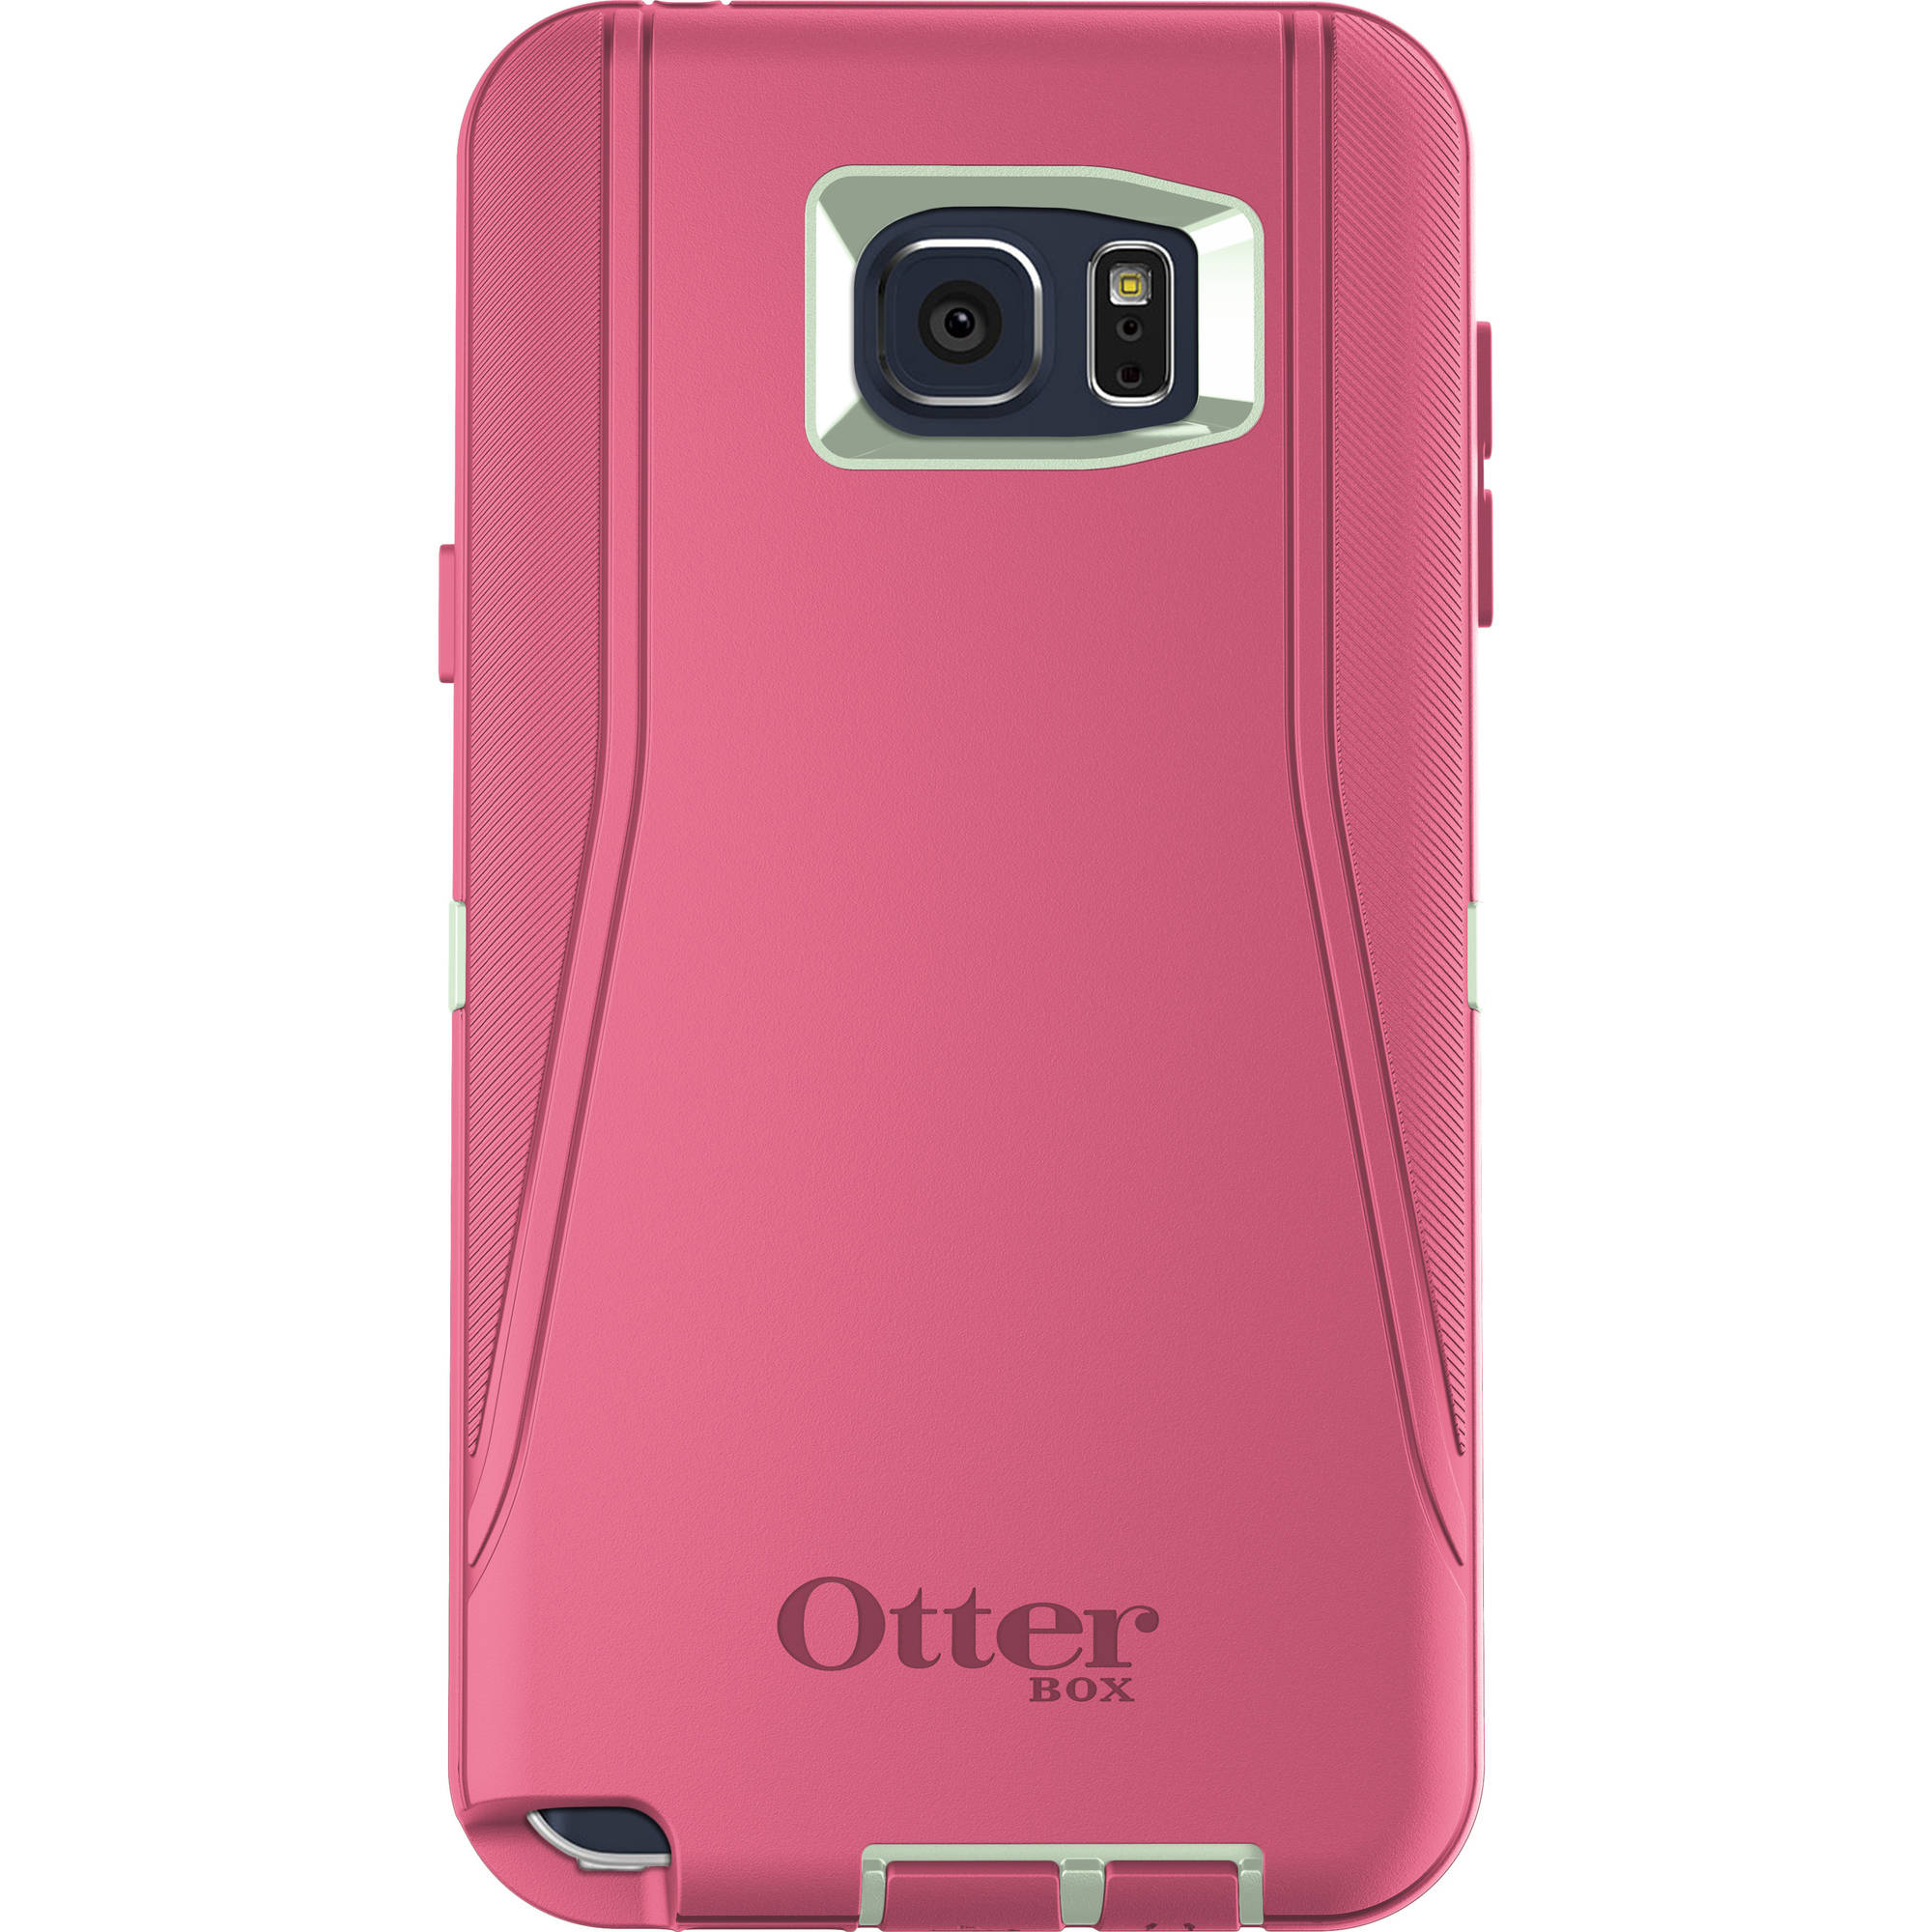 competitive price 55072 5443b OtterBox Defender Case for Samsung Galaxy Note5, Melon Pop